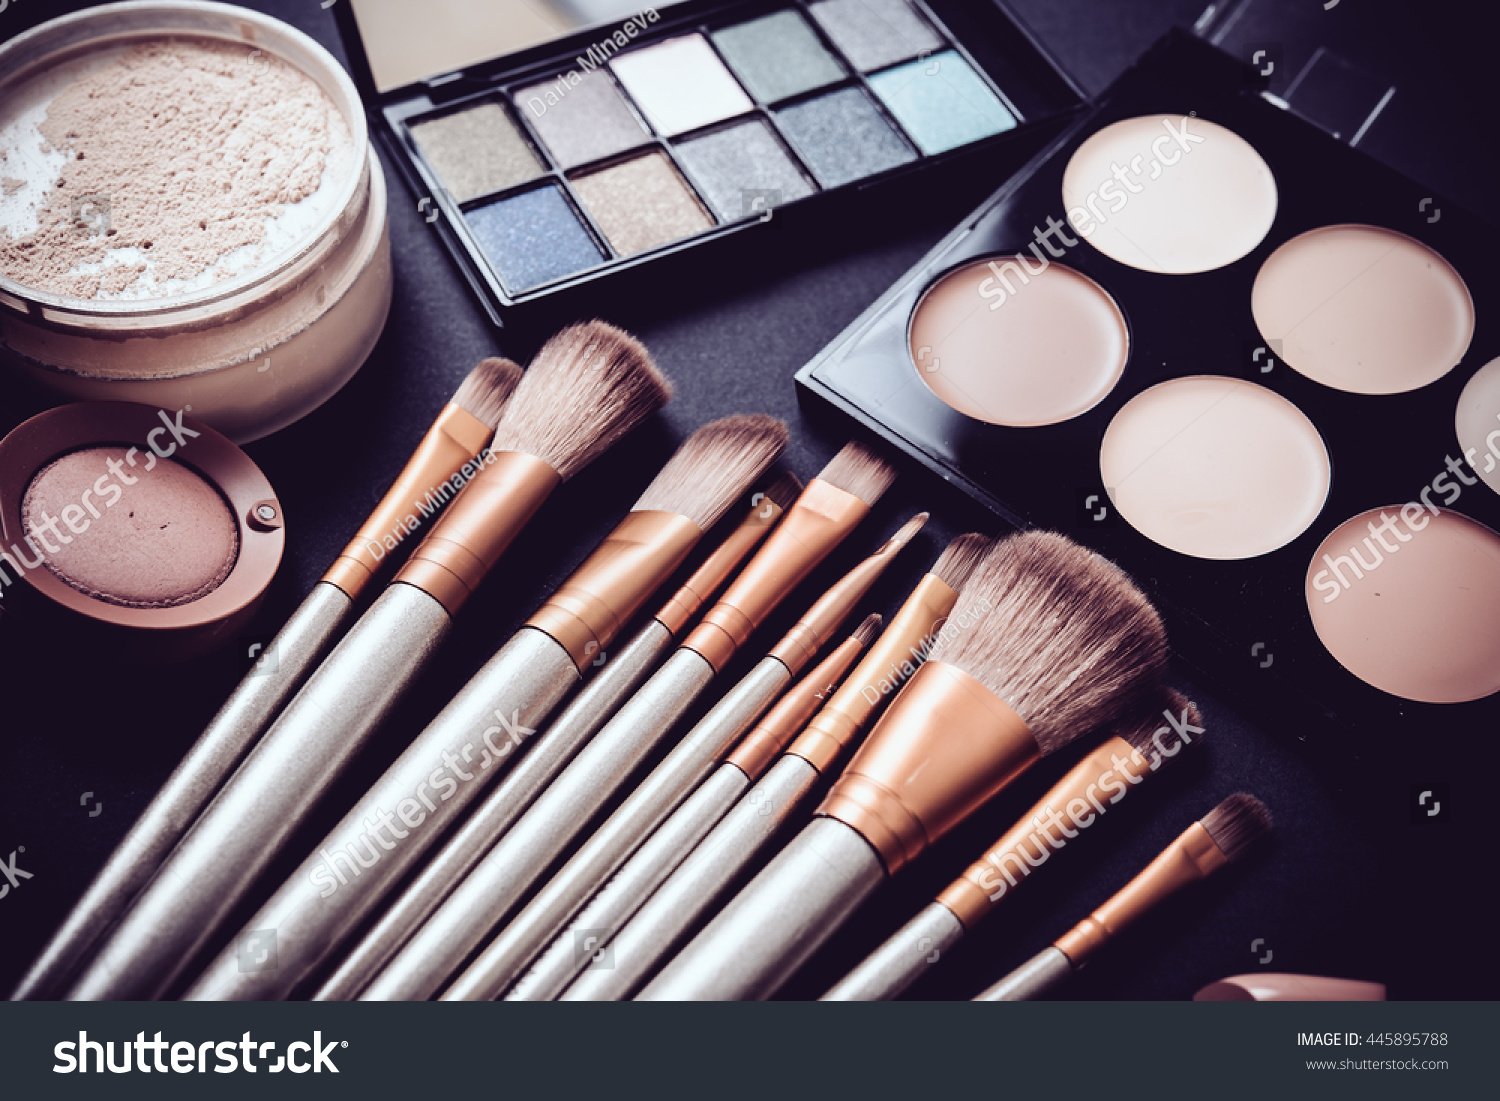 professional makeup brushes tools makeup products stock. Black Bedroom Furniture Sets. Home Design Ideas